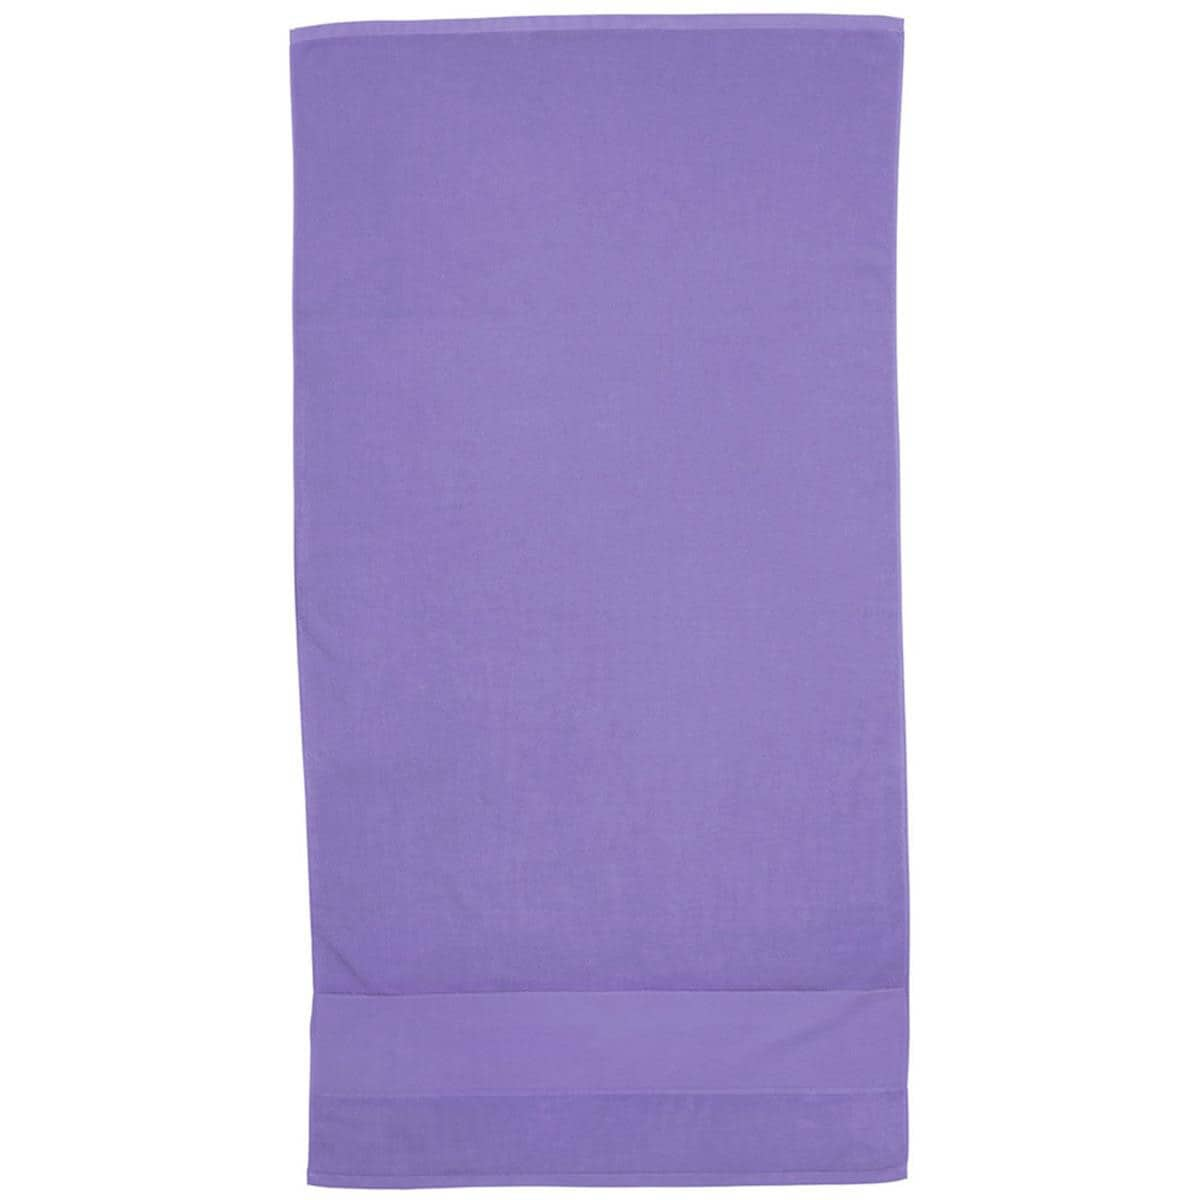 Lavender Super Soft Touch Towel Custom Printed